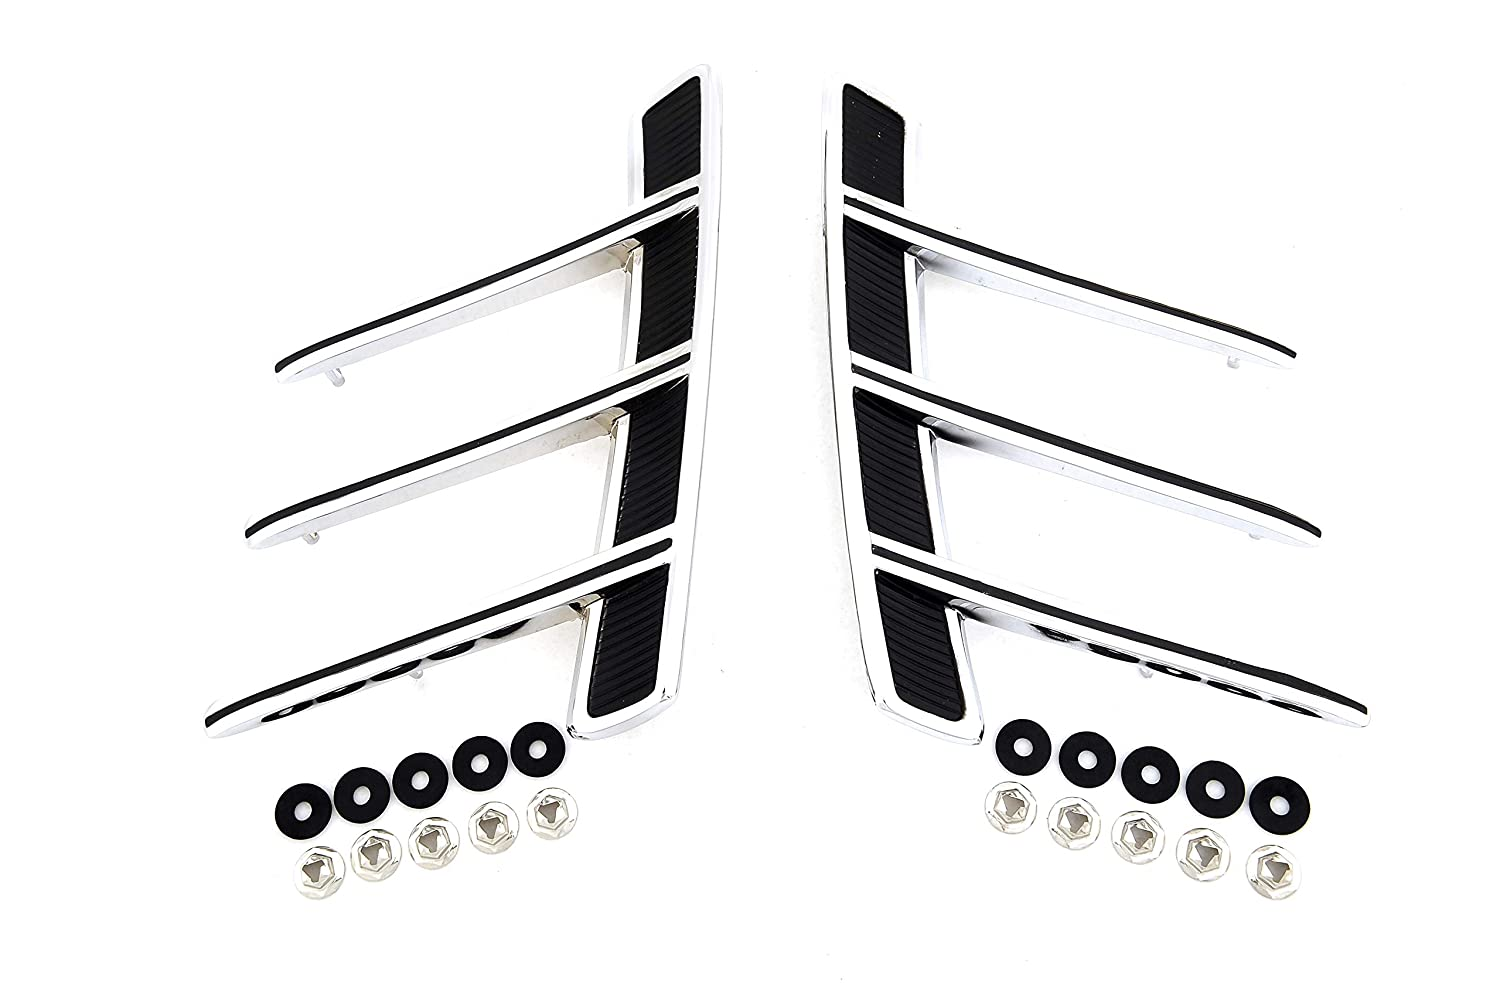 eClassics 66 for Ford Mustang Quarter Panel Ornament PAIR